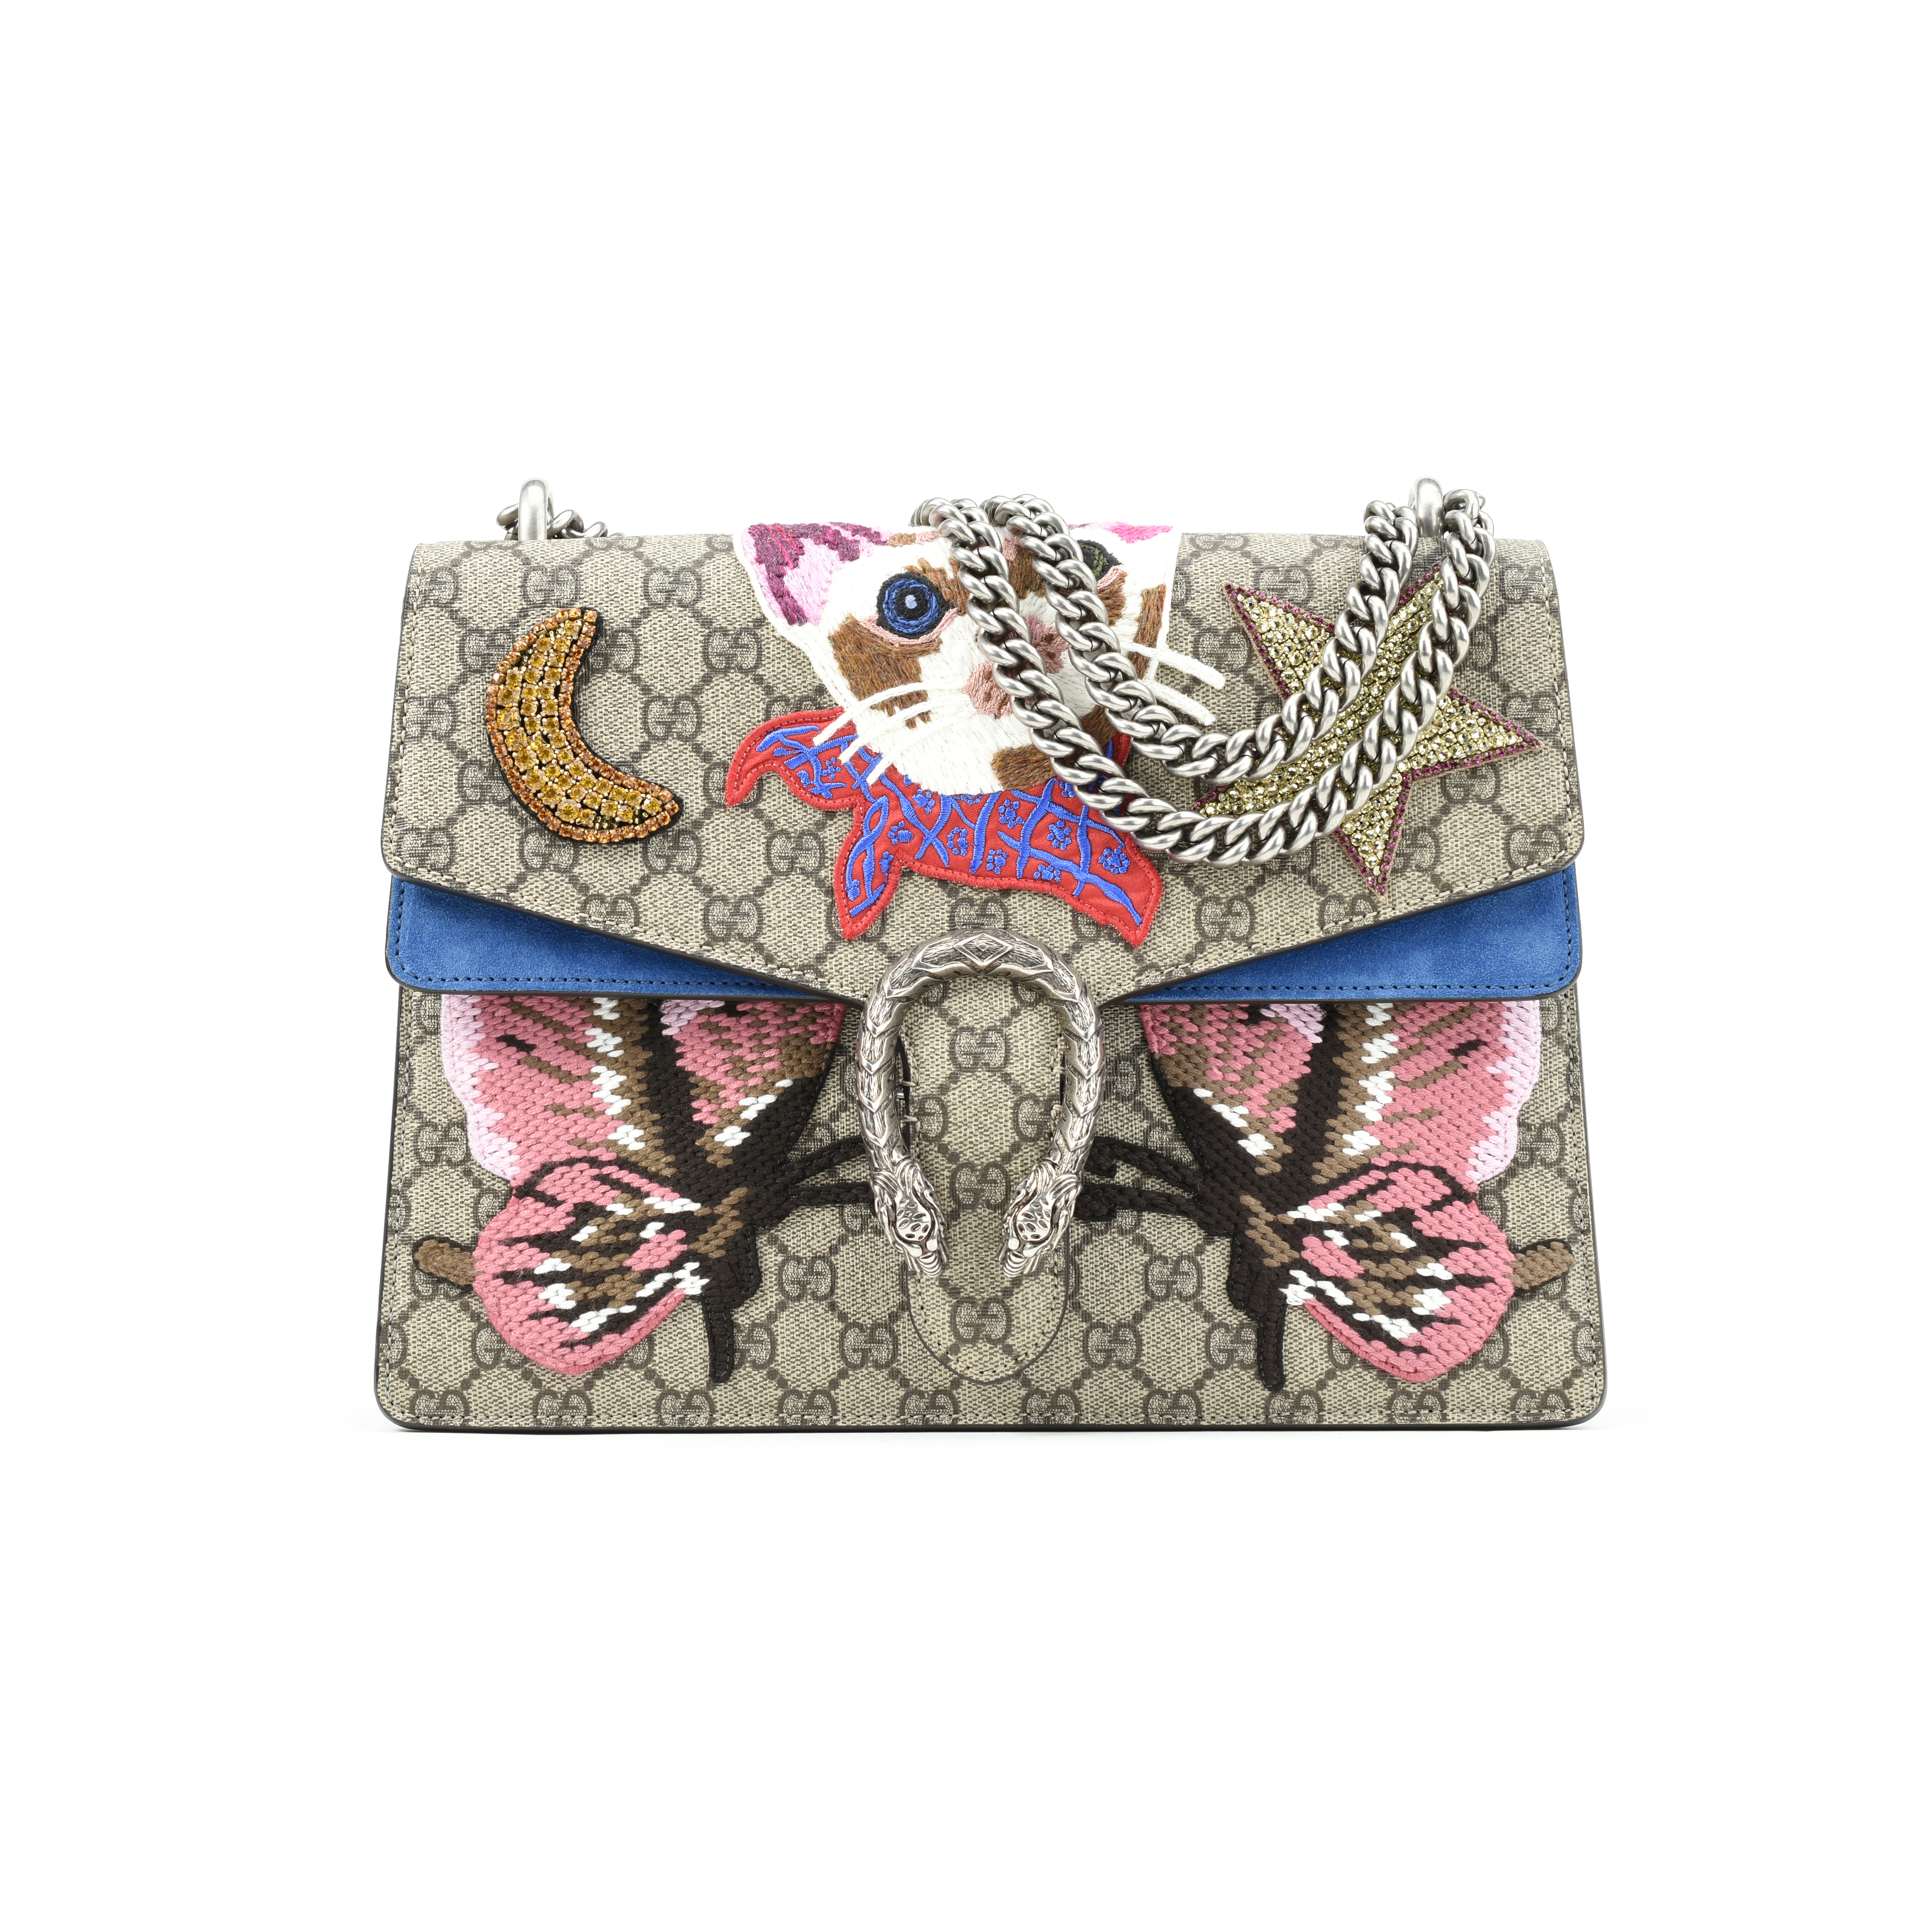 5026b0c66 Authentic Second Hand Gucci Dionysus Marmont Embroidered Cat Shoulder Bag  (PSS-200-00990) - THE FIFTH COLLECTION